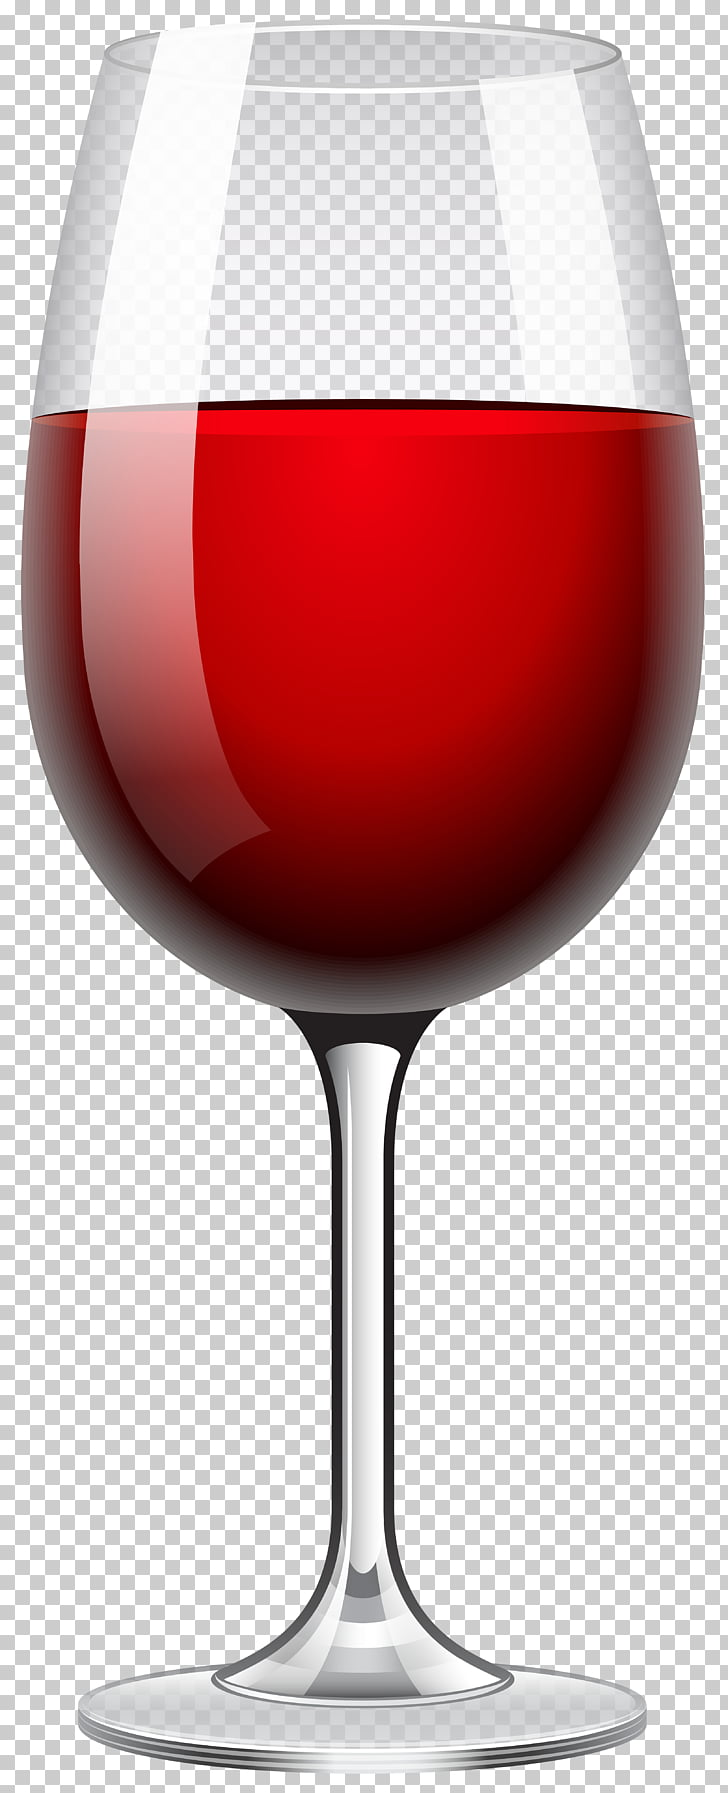 hight resolution of red wine white wine champagne wine glass red wine glass transparent wine filled